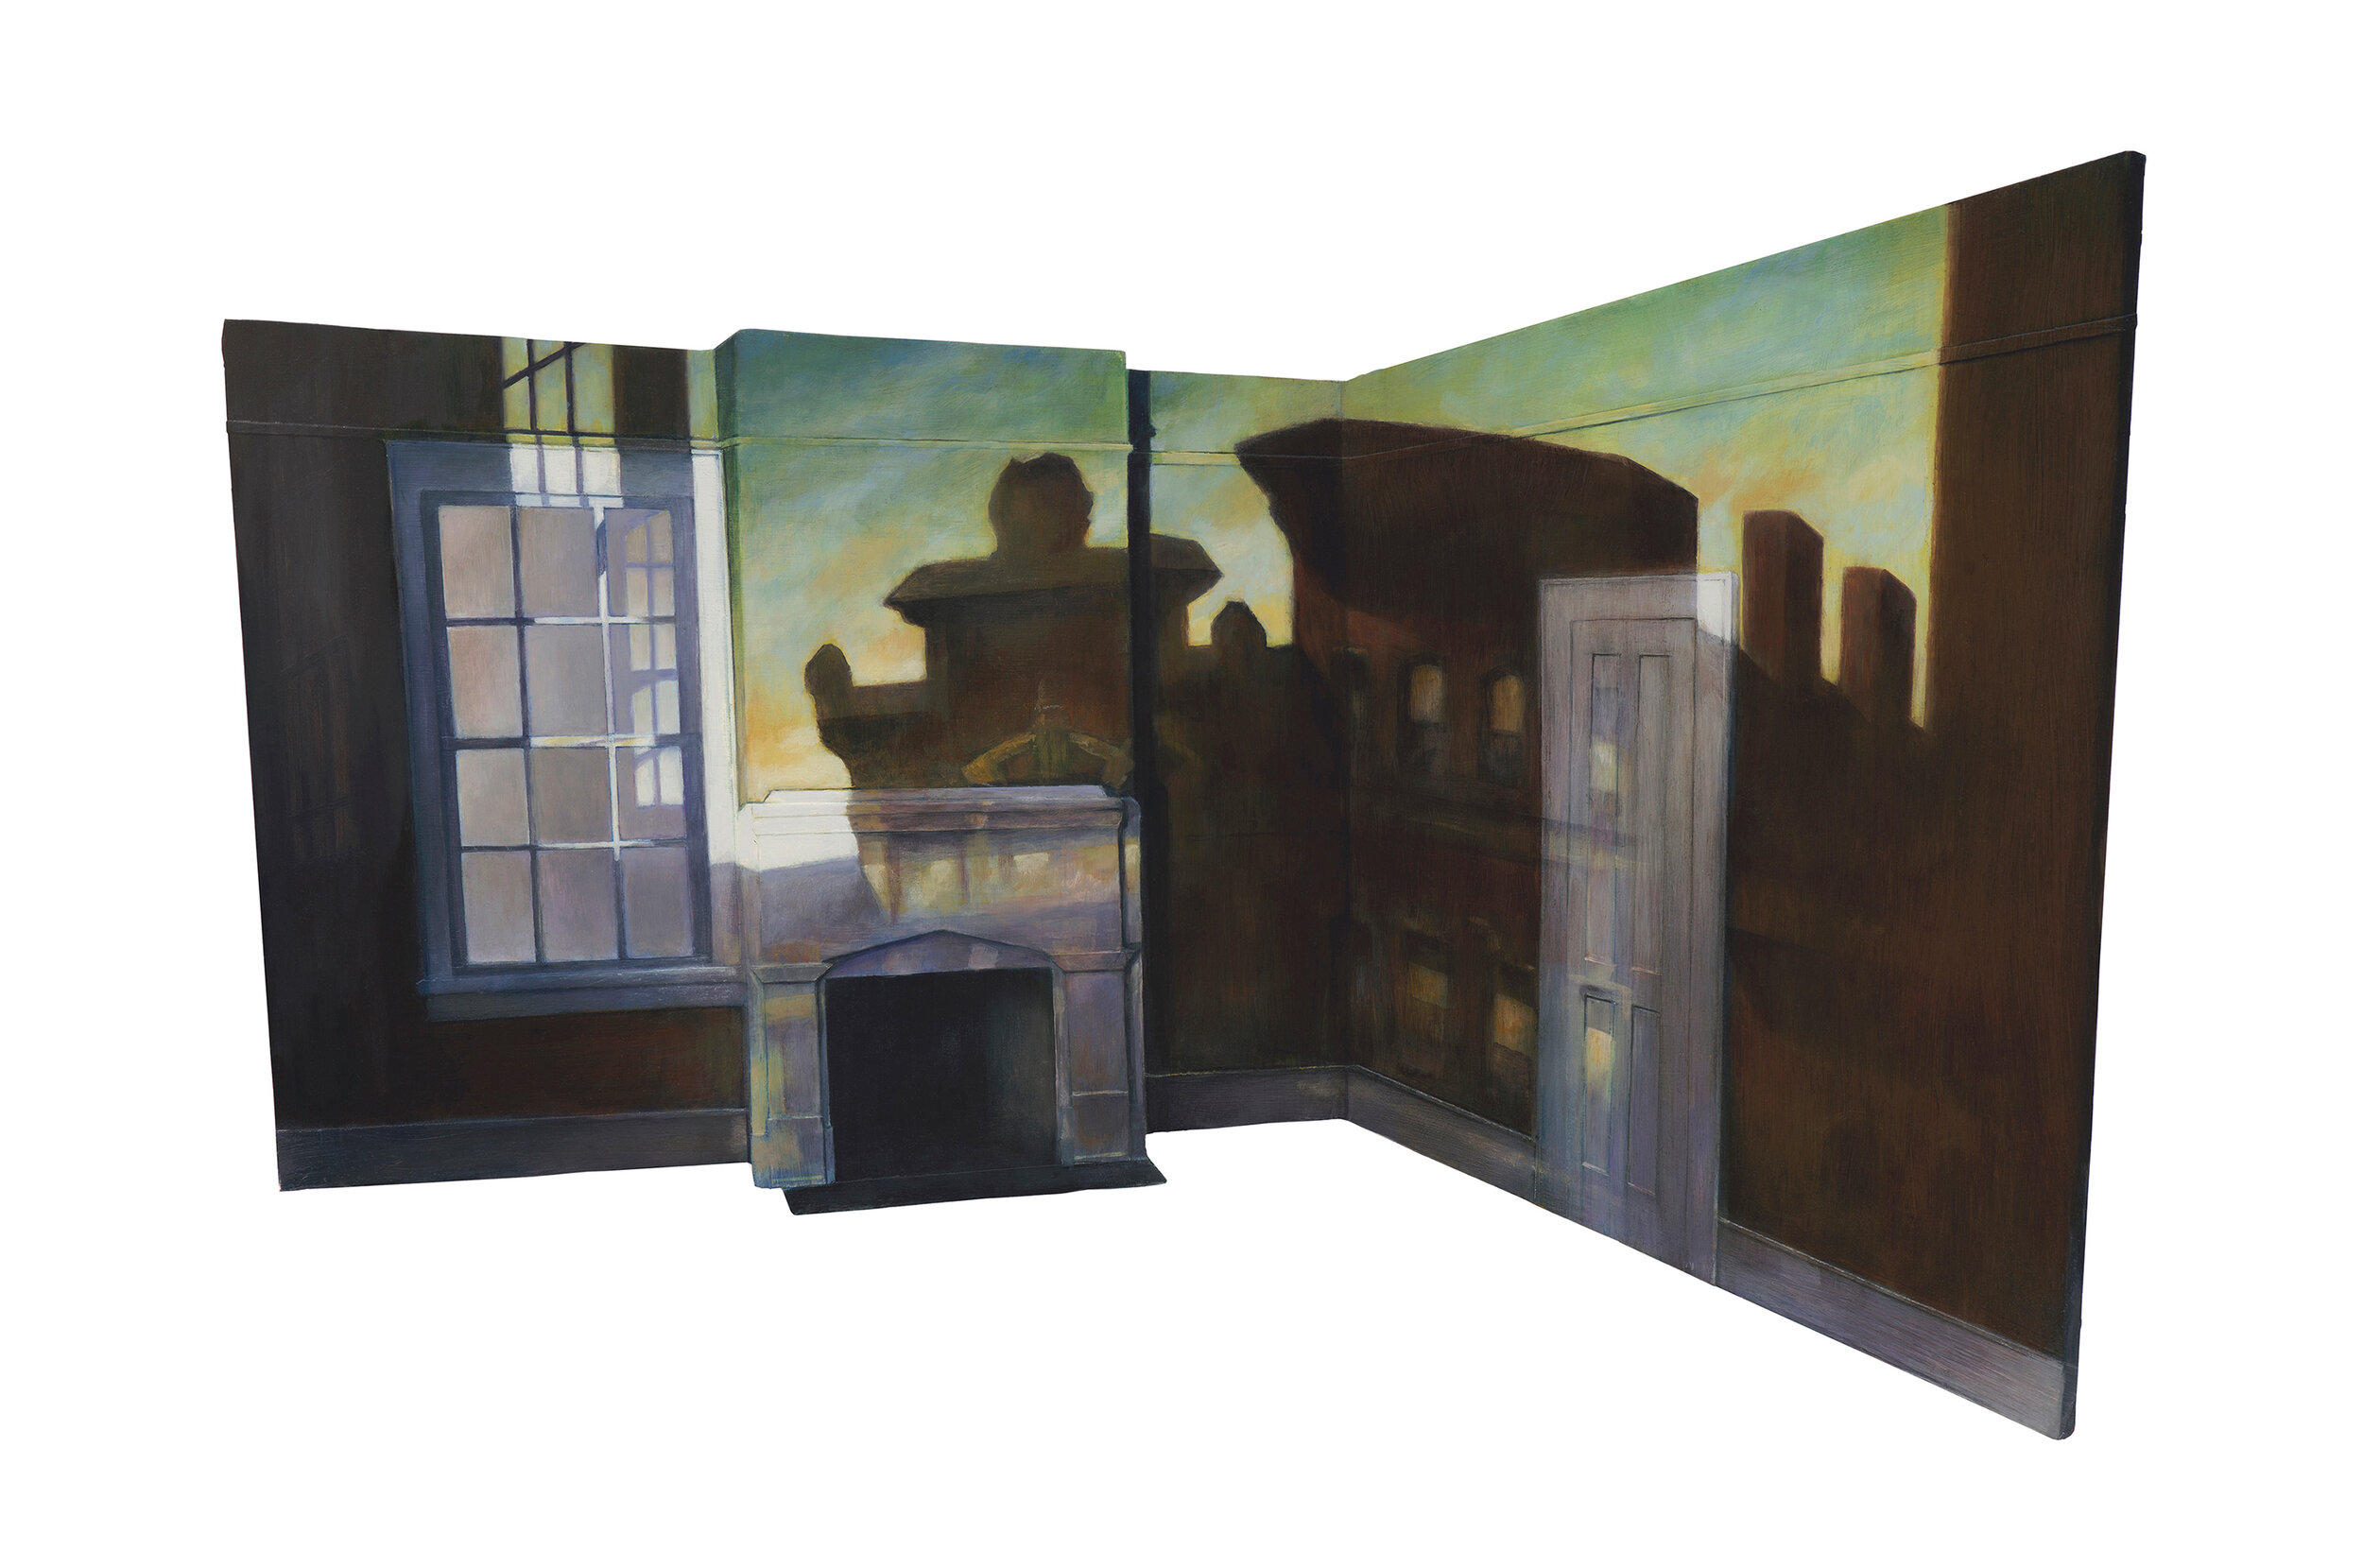 """Edward Hopper's """"From Williamsburg Bridge"""" Projected over Hopper Bedroom Model   2019  Oil on shaped and raised relief panel  16.5 x 24.5 inches"""